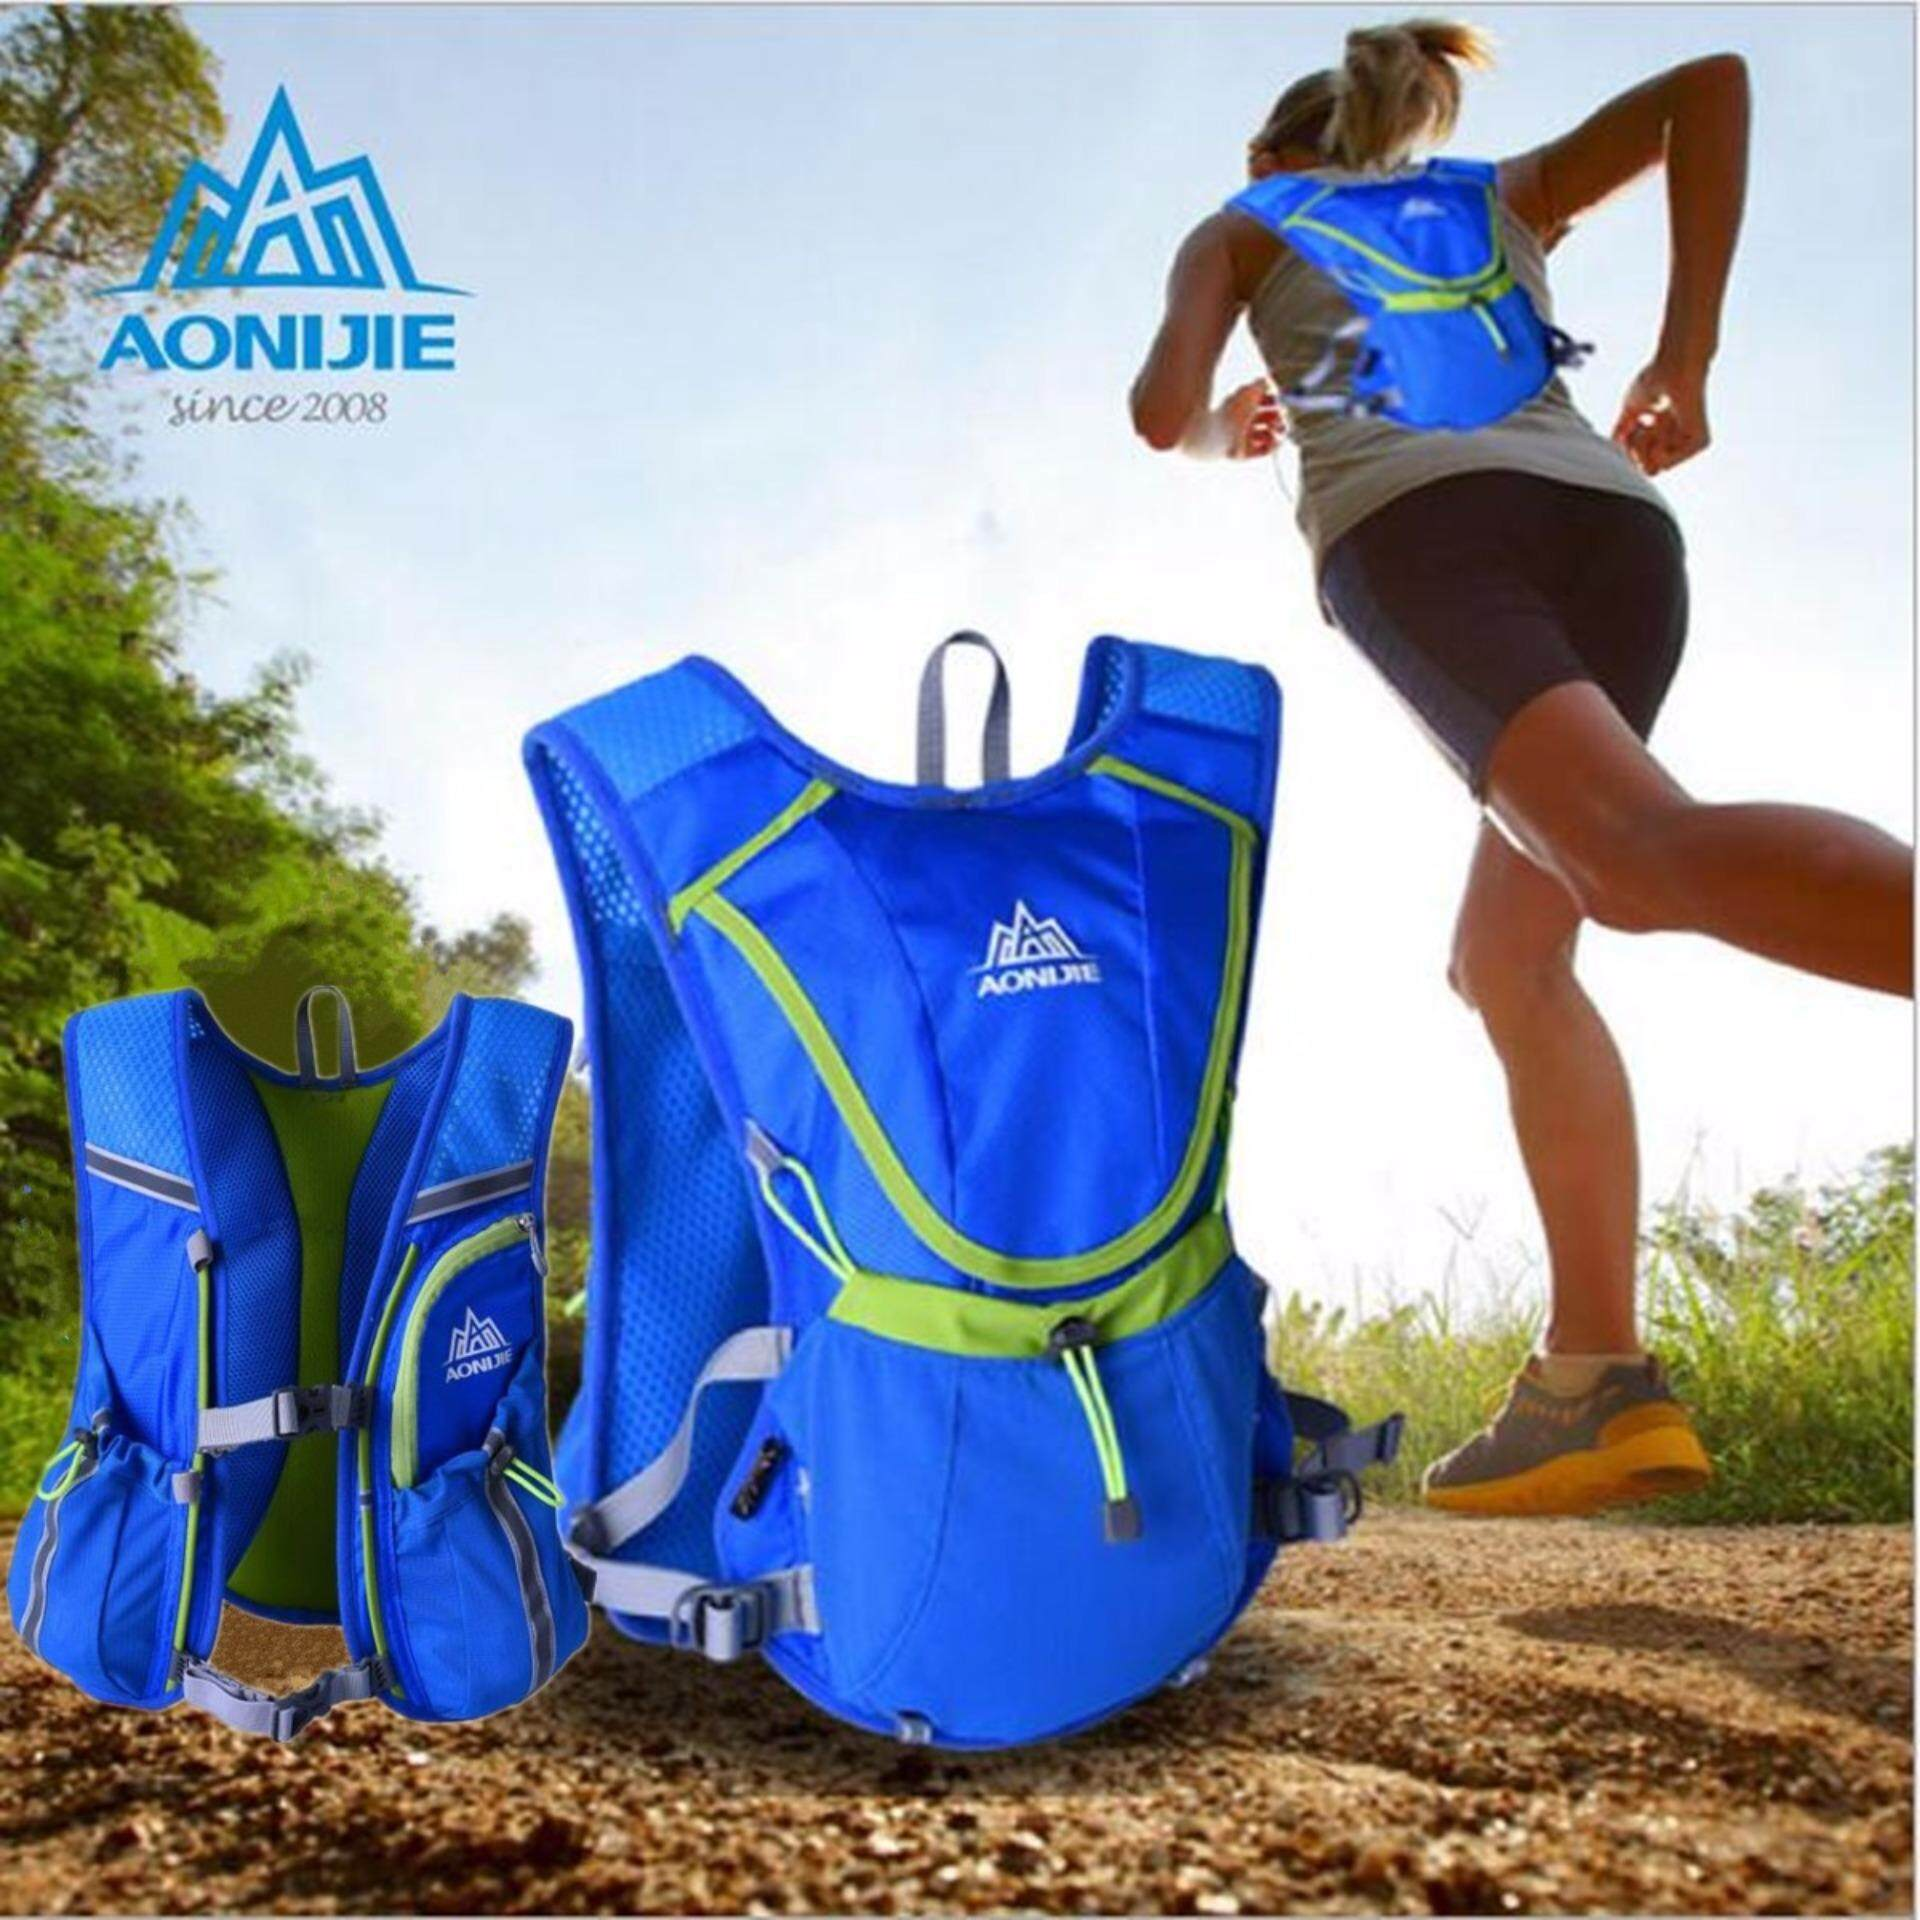 [ Quick Delivery ] AONIJIE Running Cycling Vest Backpack Sports Camping Hydration Water Bladder Bag - Blue